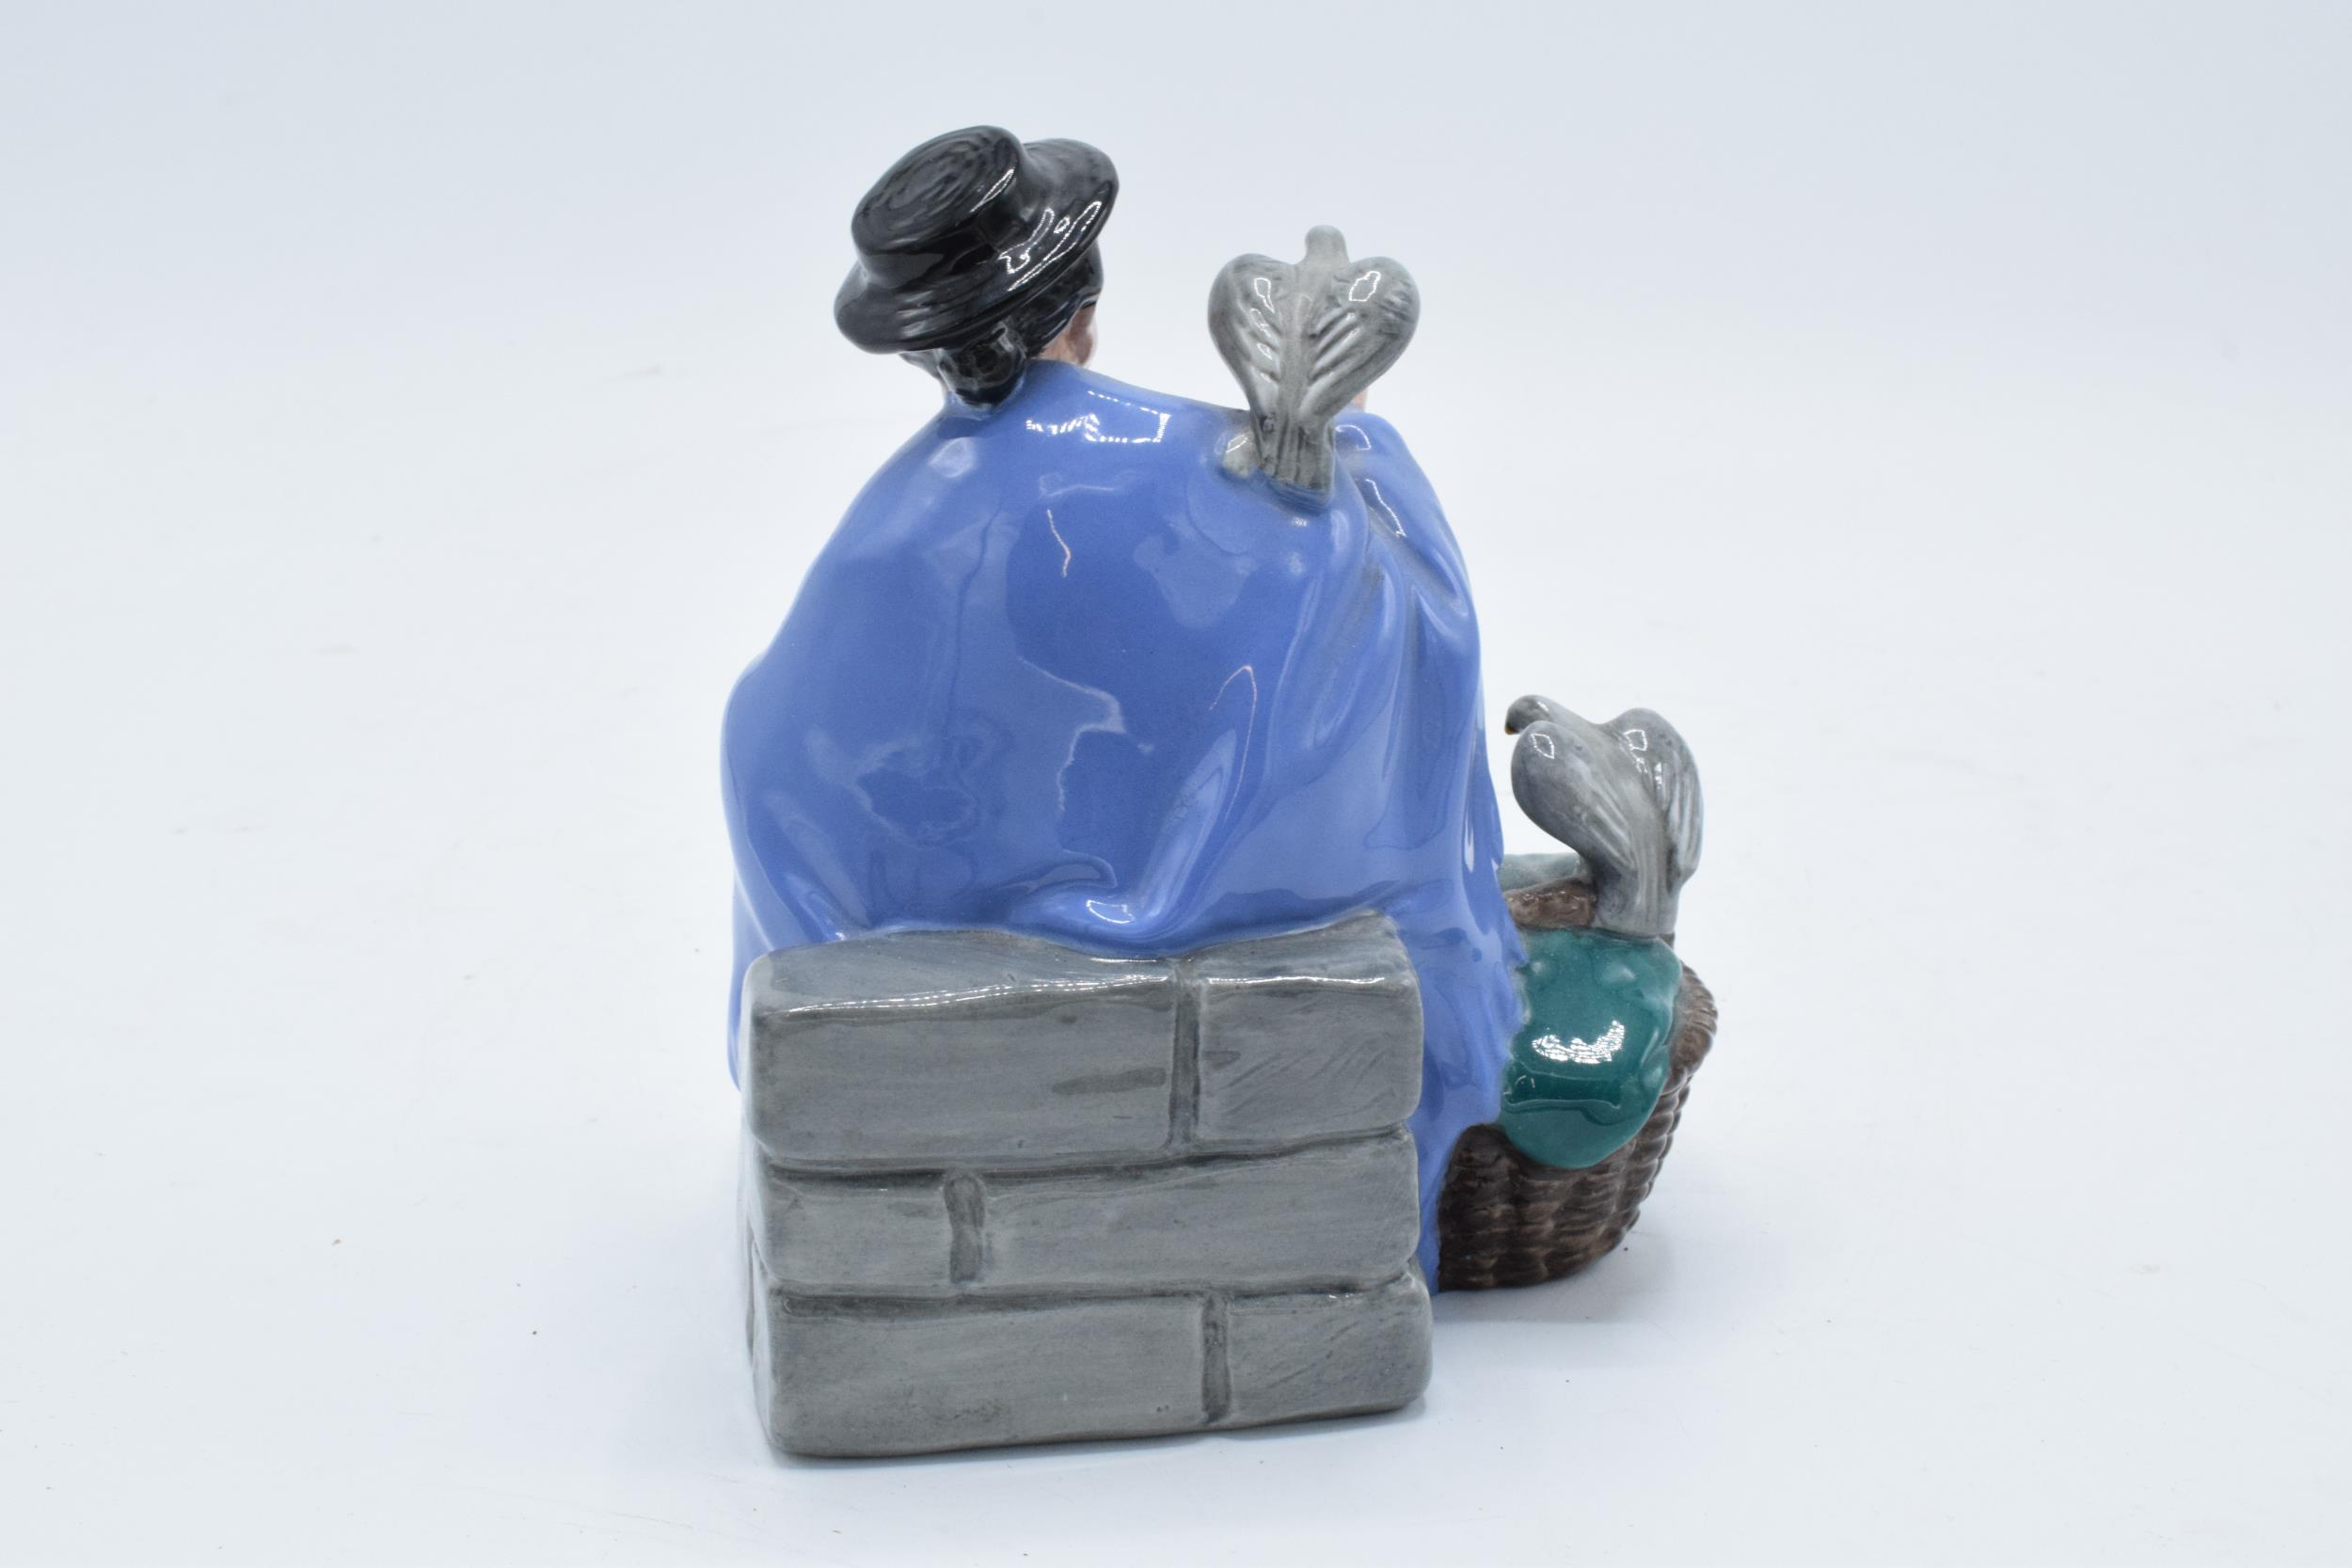 Royal Doulton figure Tuppence a Bag HN2320. 14cm tall. In good condition with no obvious damage or - Image 2 of 4